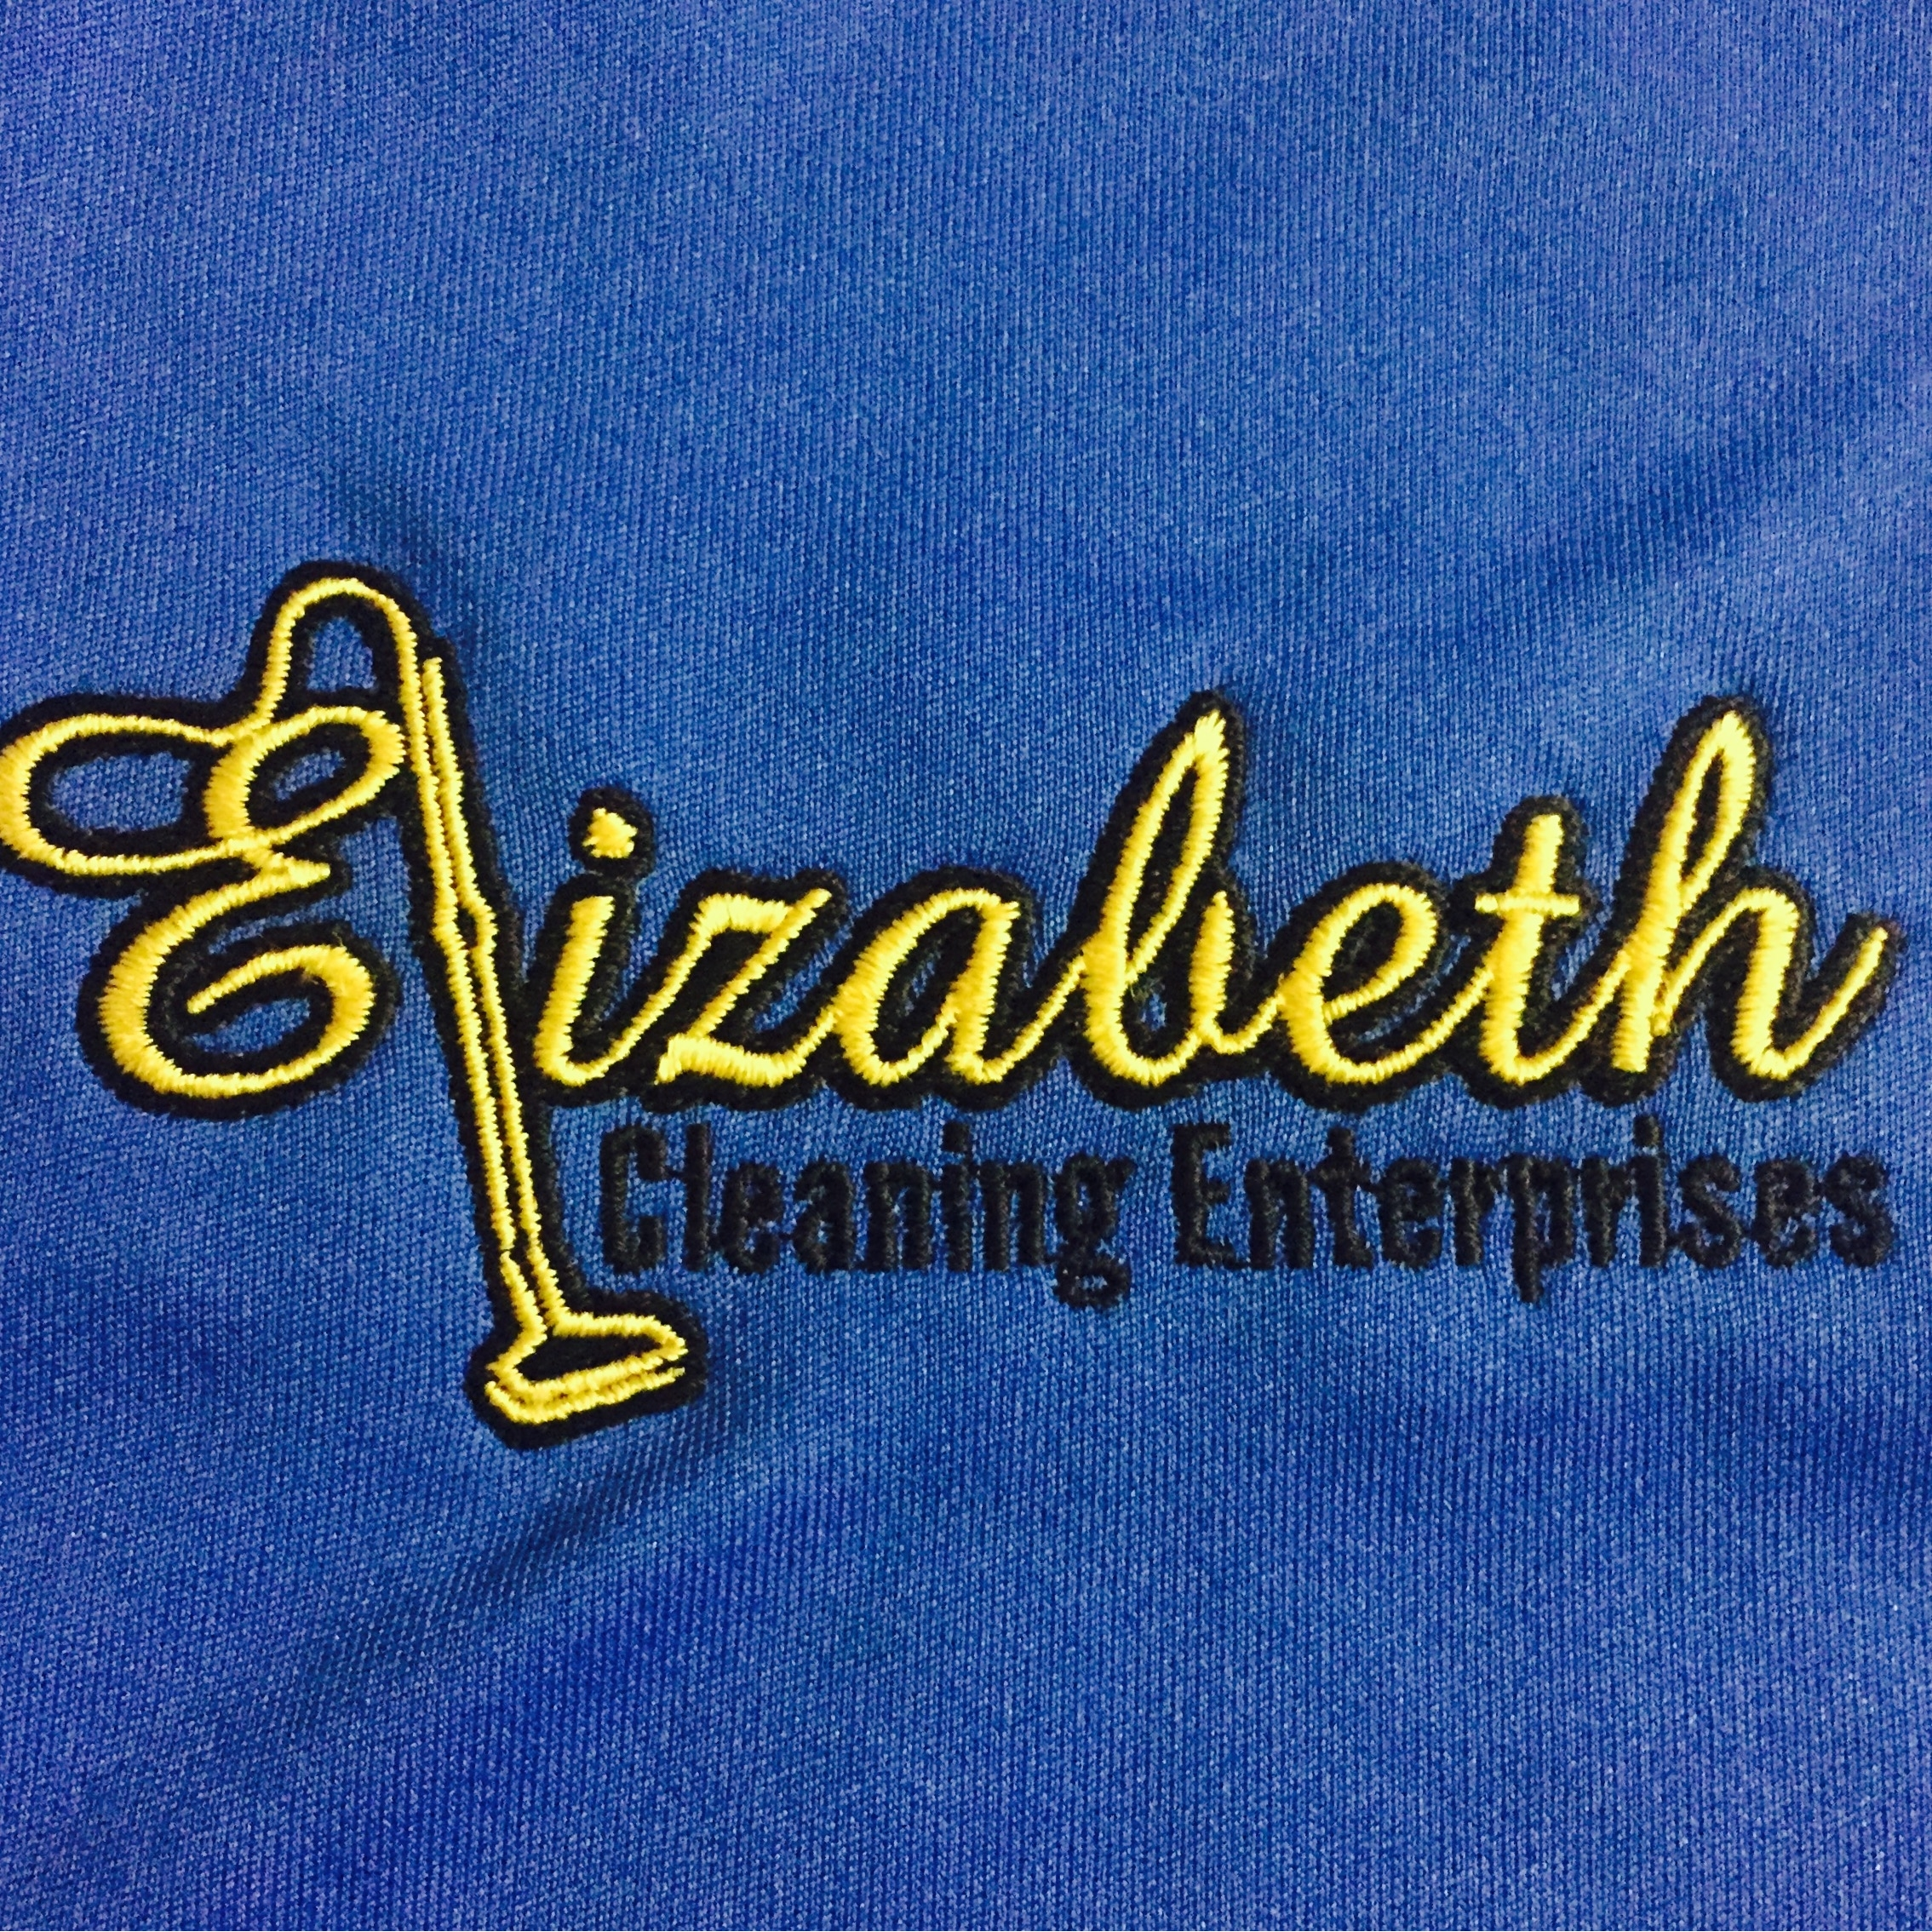 Elizabeth Cleaning Enterprises, Inc